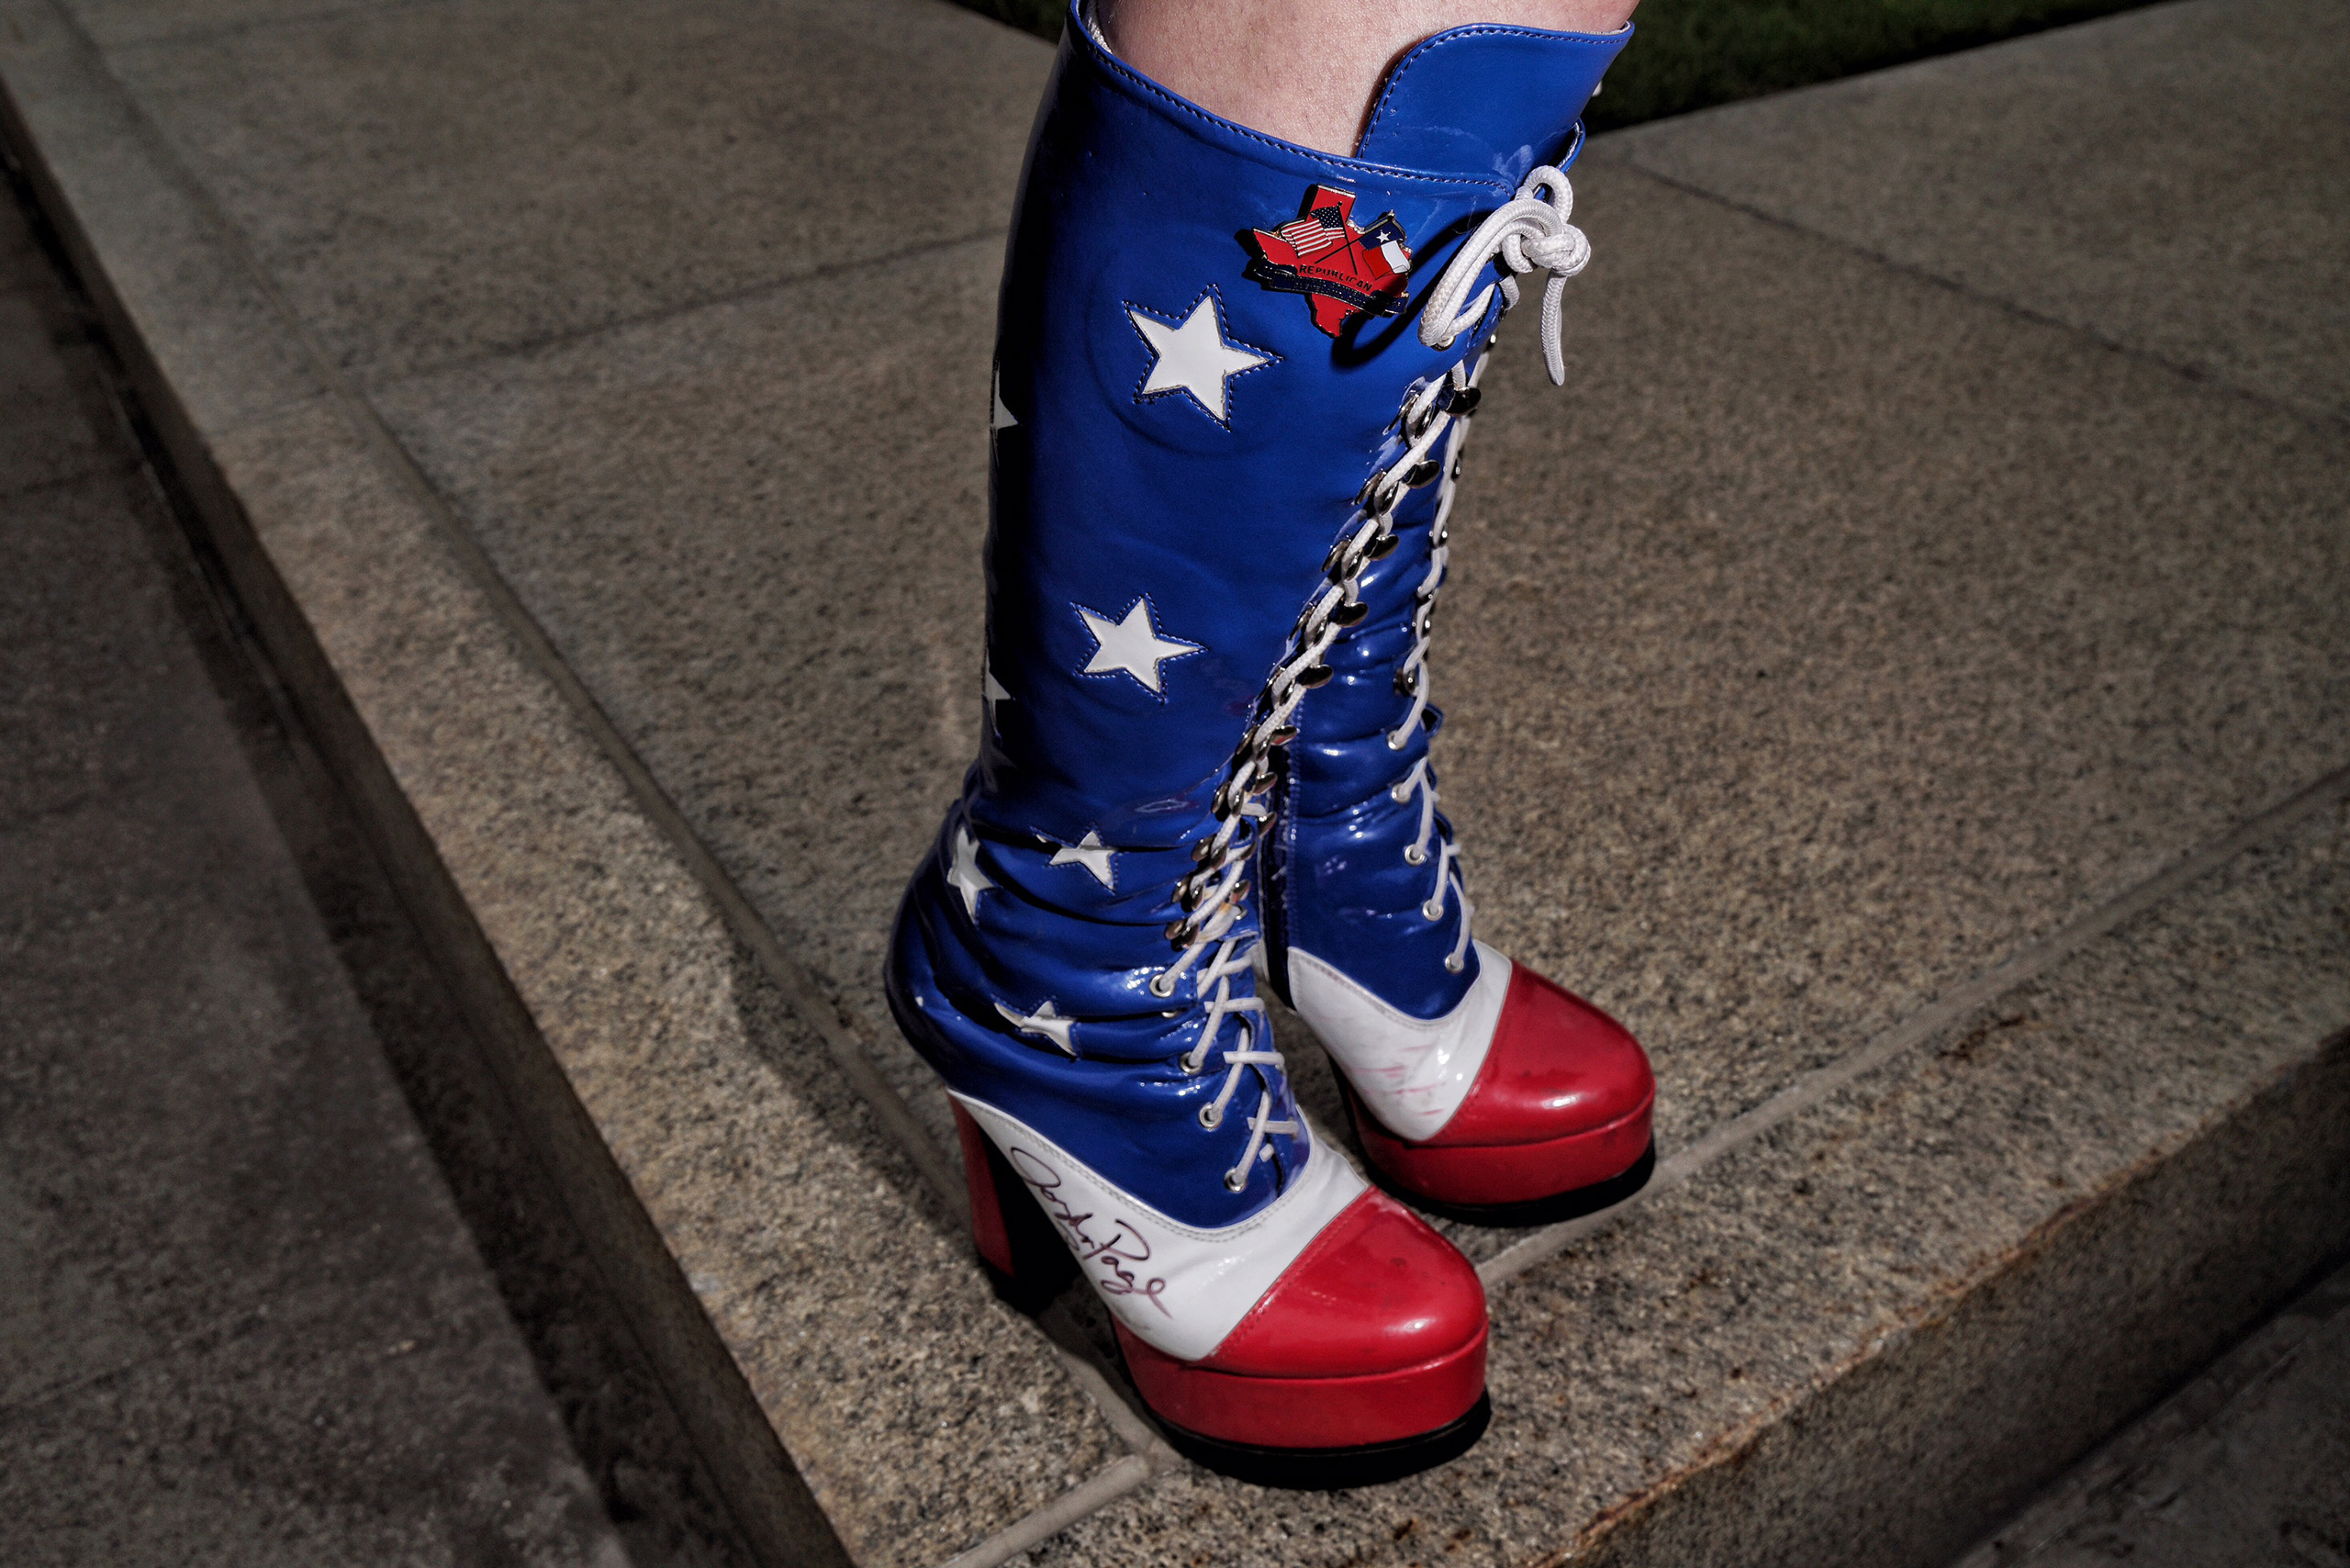 A patriotic fashion statement on the streets of downtown Cleveland, July 17, 2016.